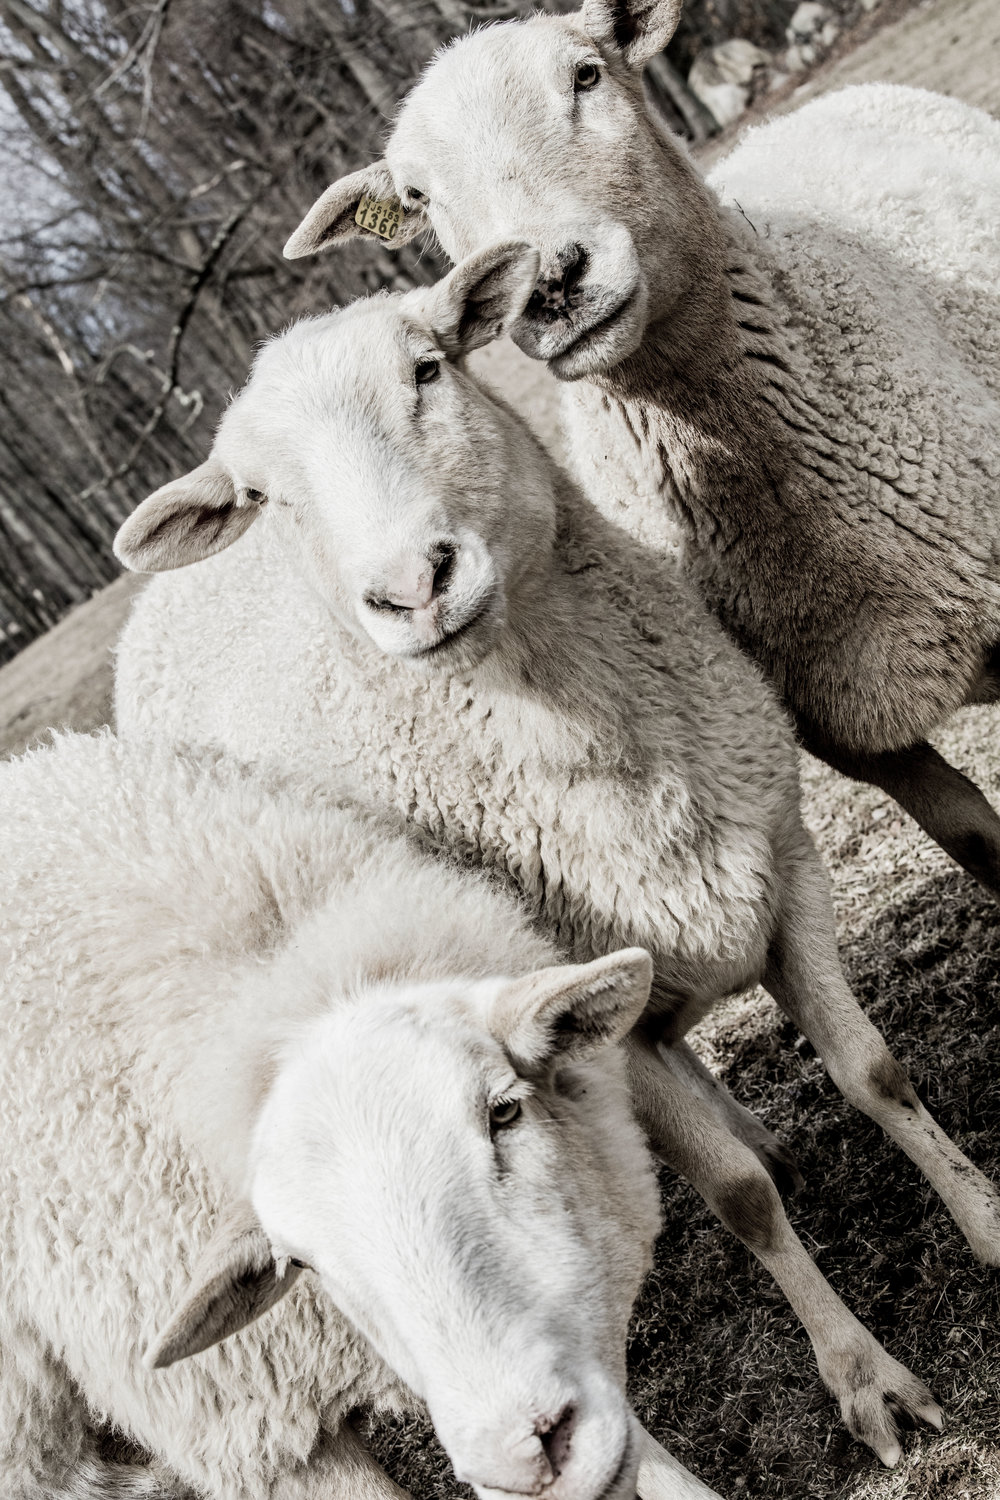 Three white sheep